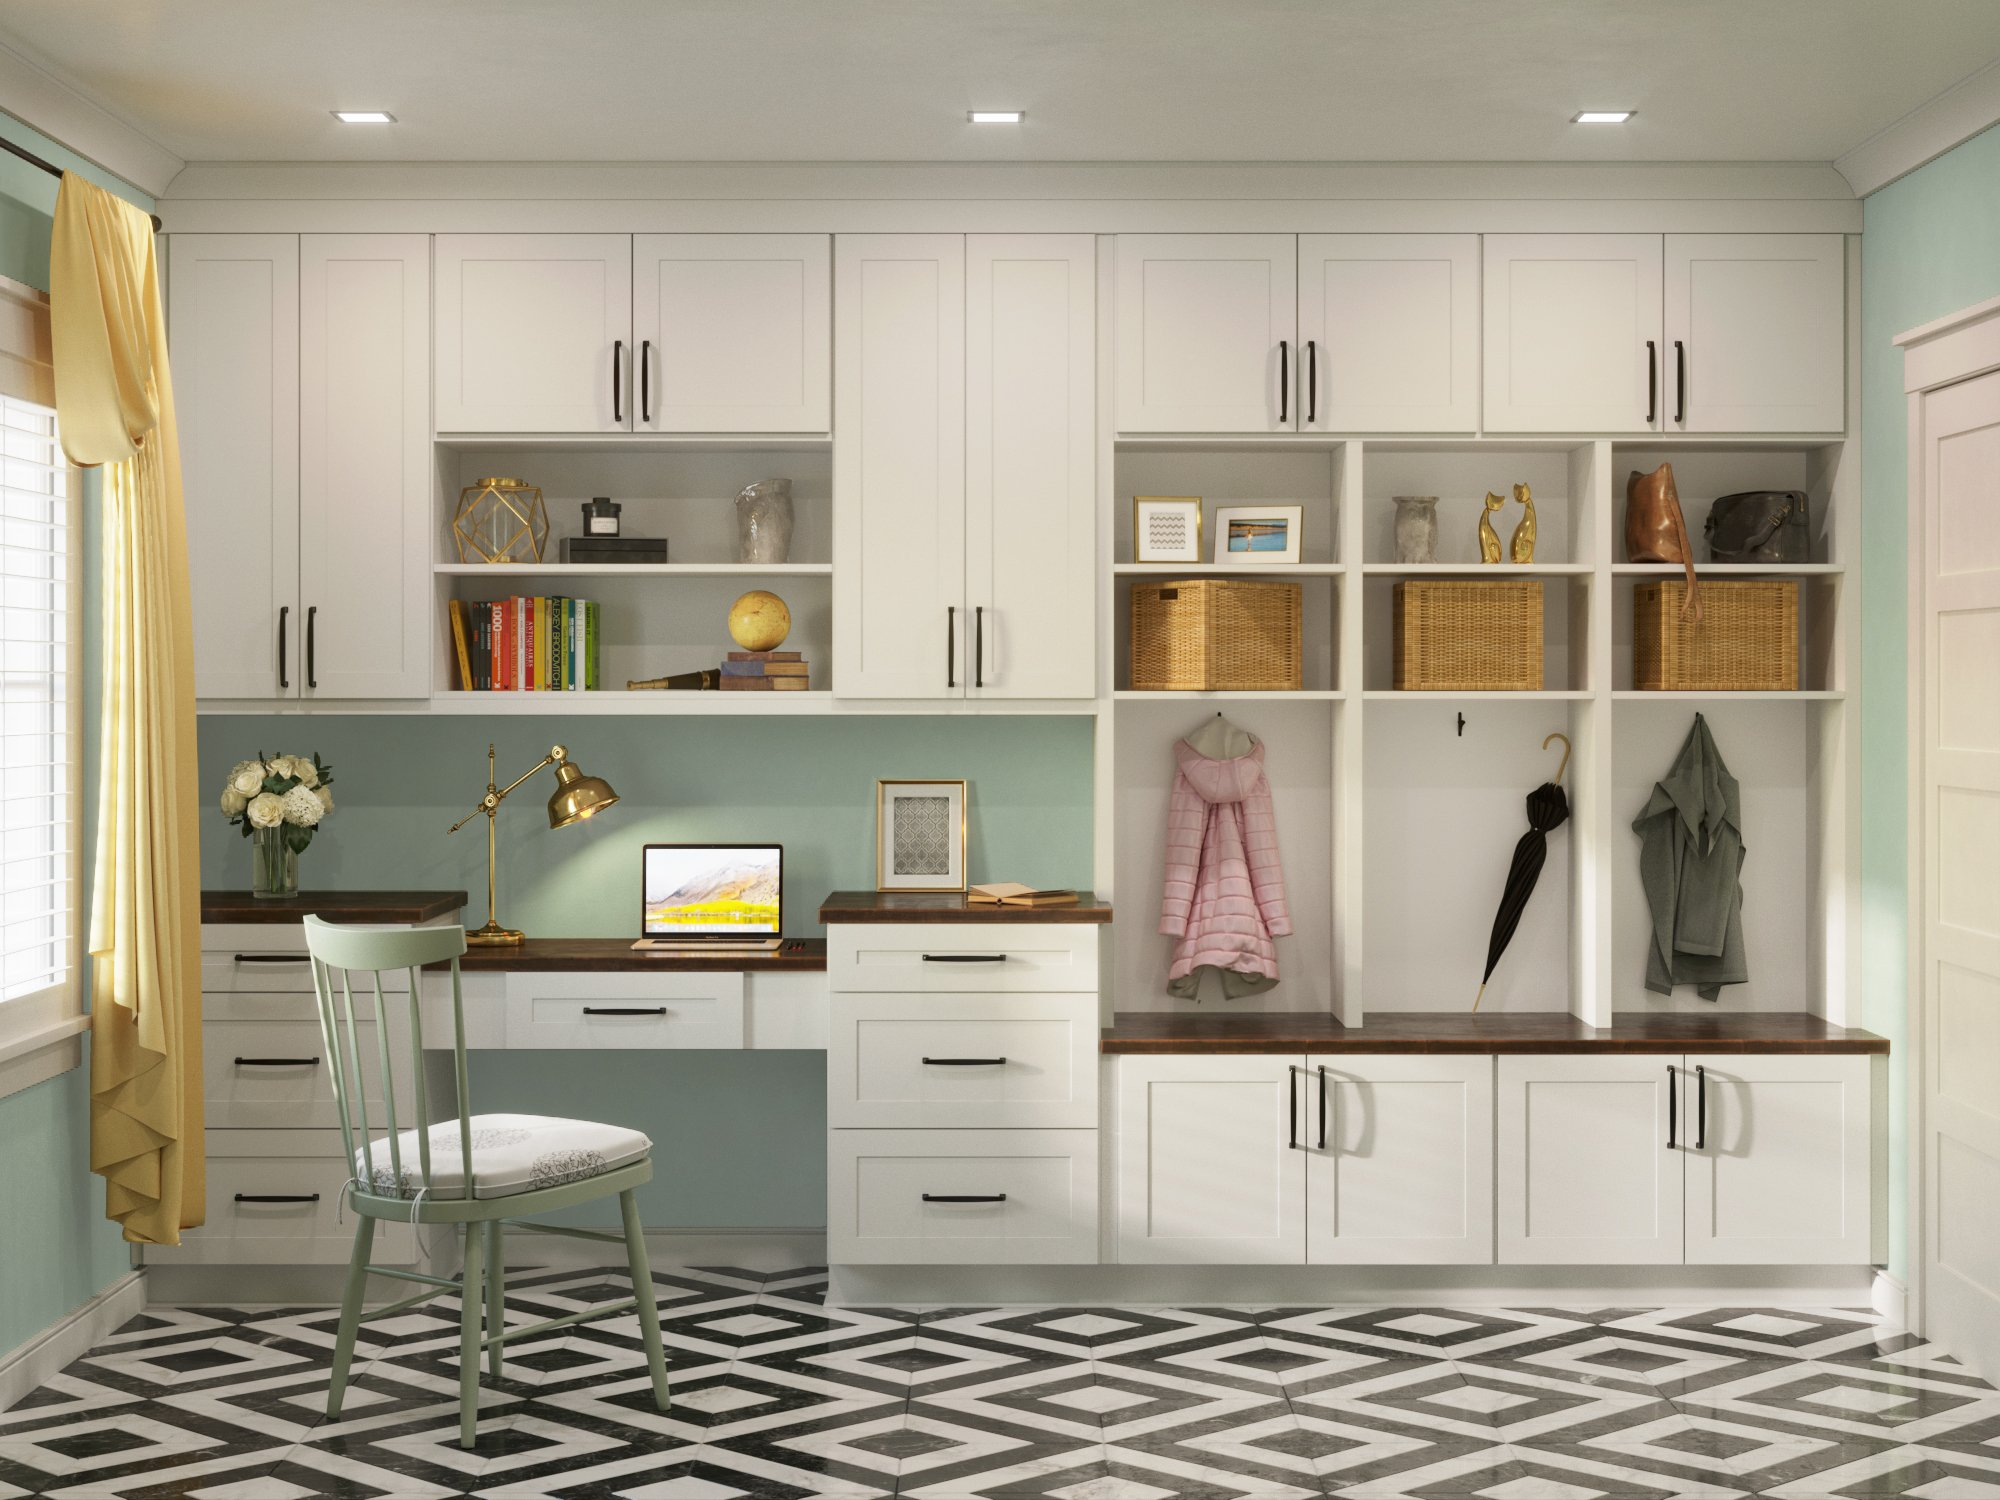 Us Cabinet Depot Sonoma White Mudroom Kitchen